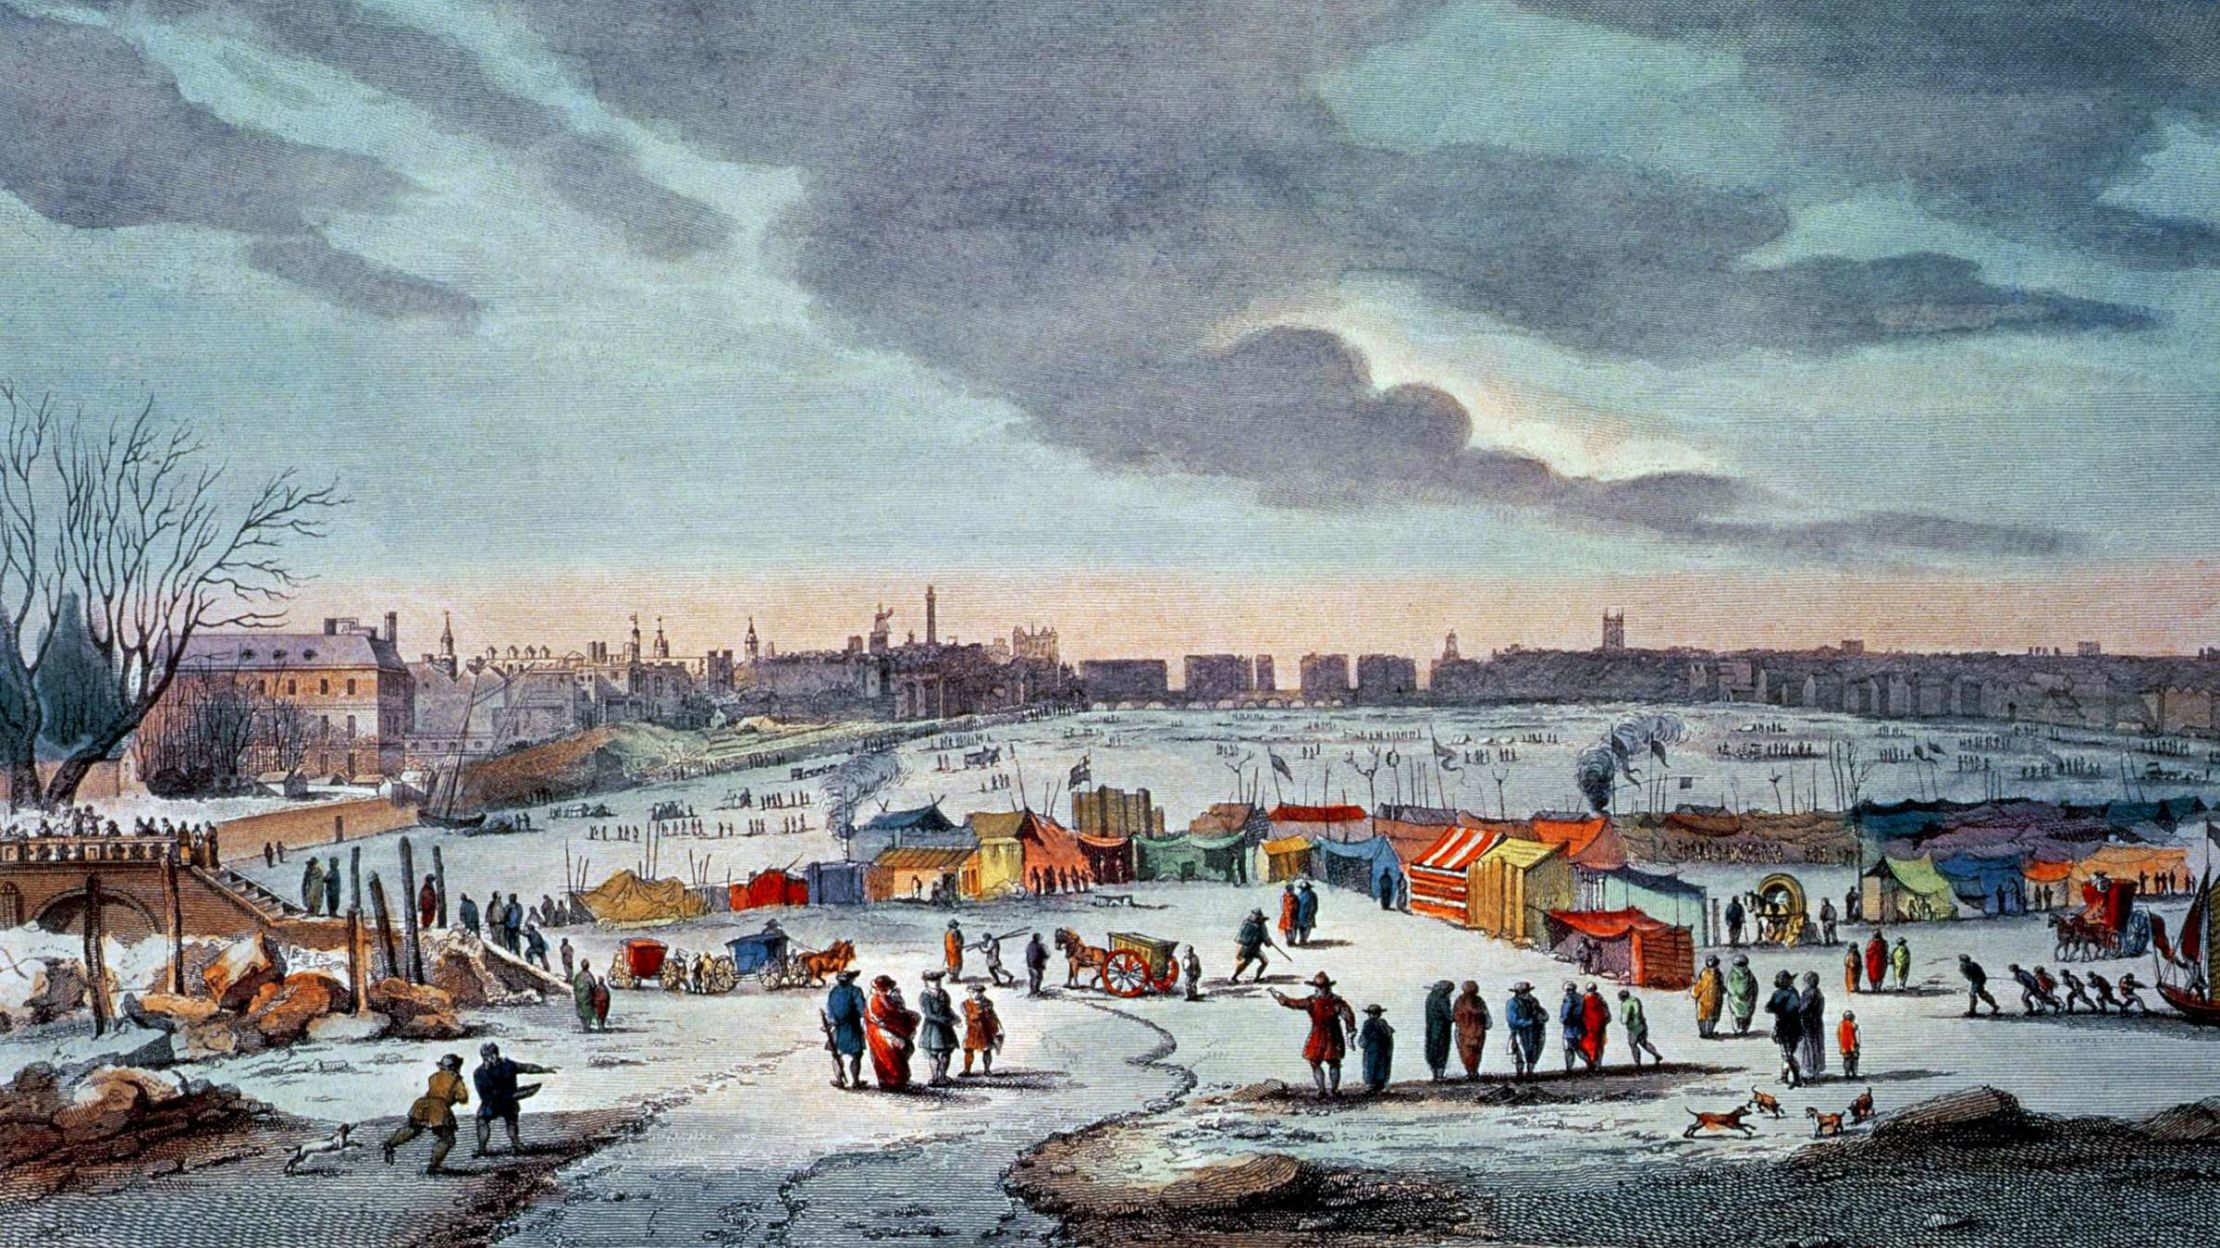 When the River Thames Froze, Londoners Held Frost Fairs